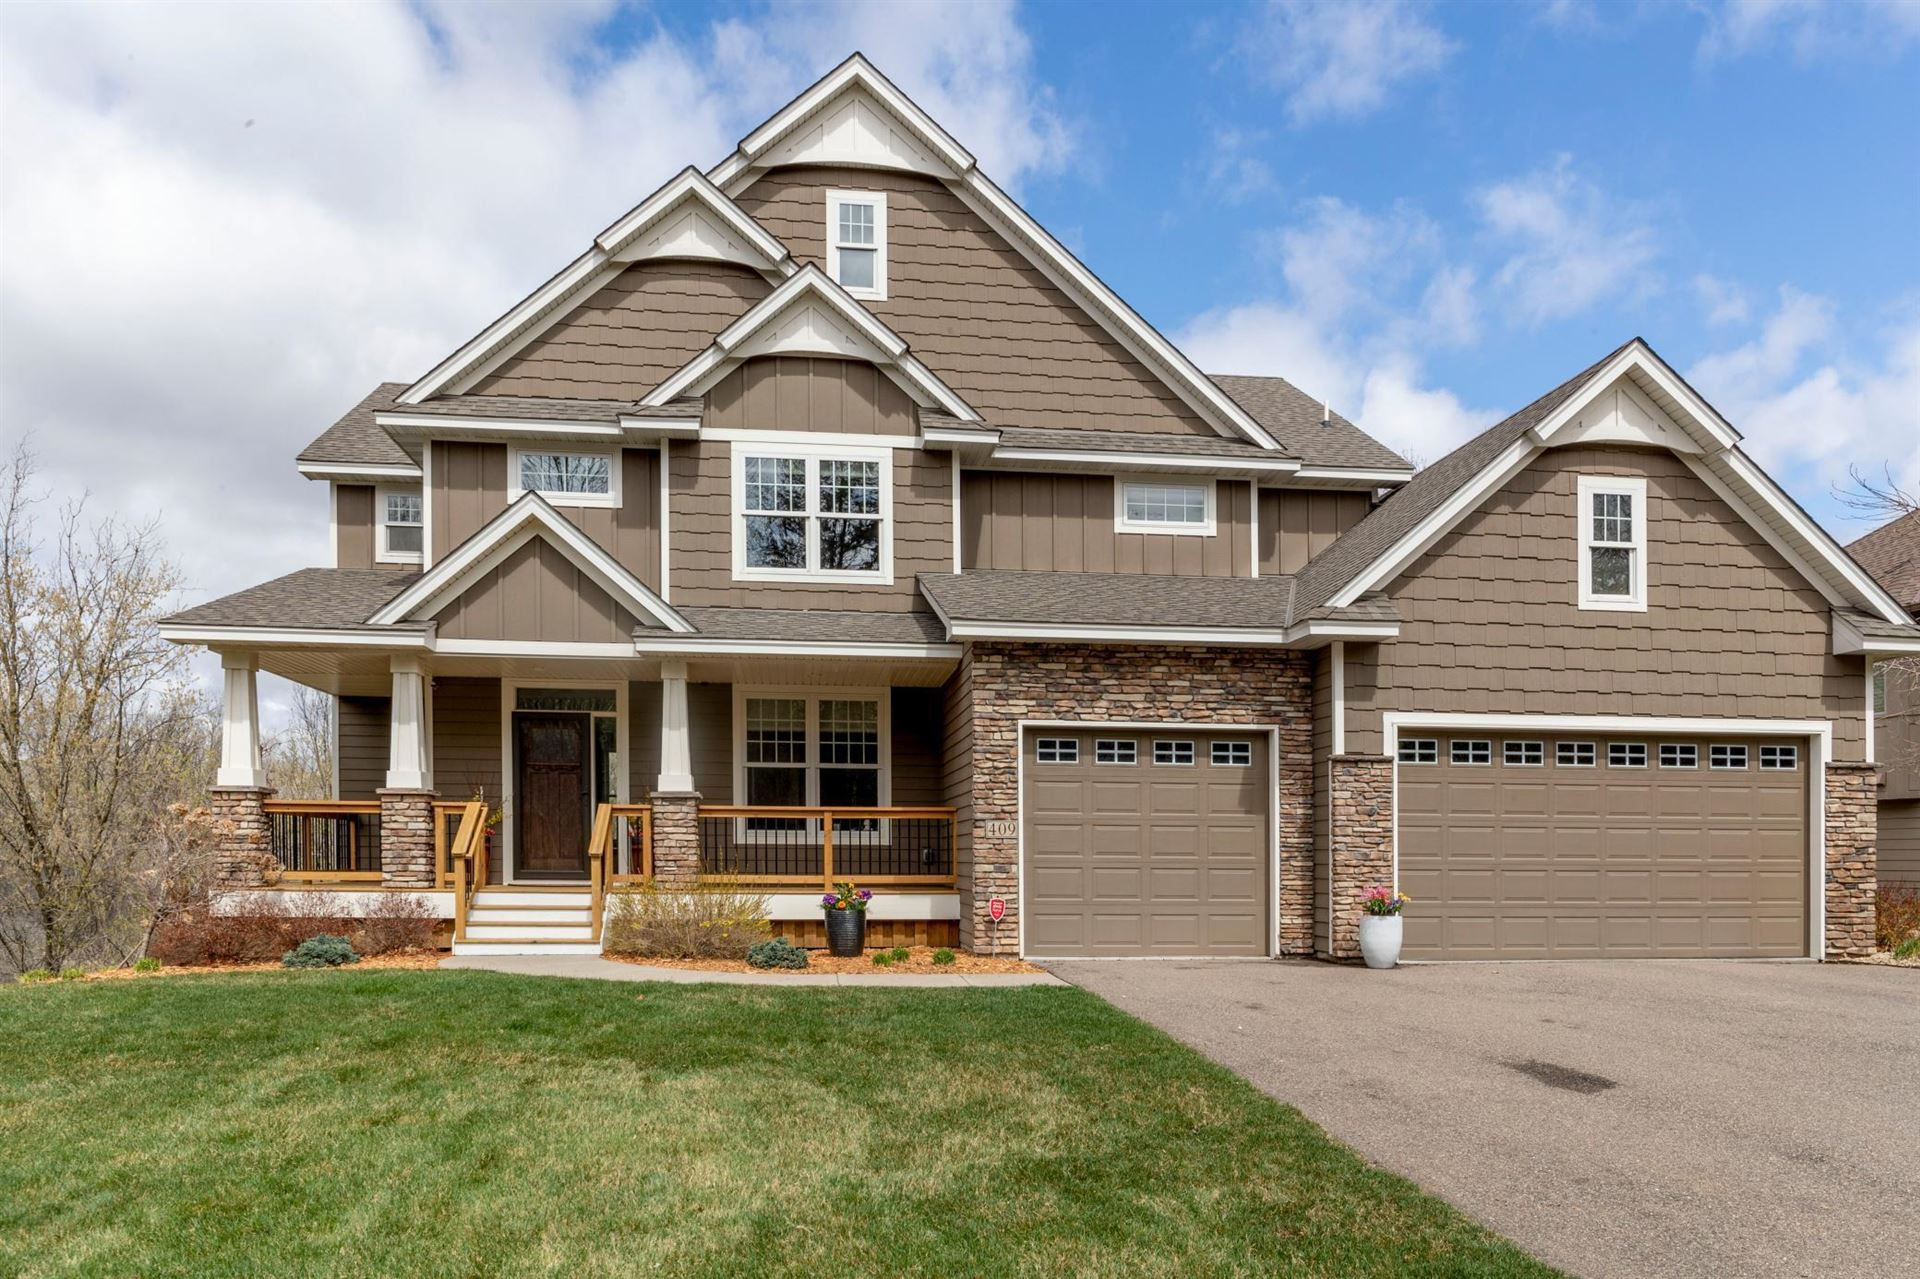 409 Preserve Court, Little Canada, MN 55117 - MLS#: 5749326